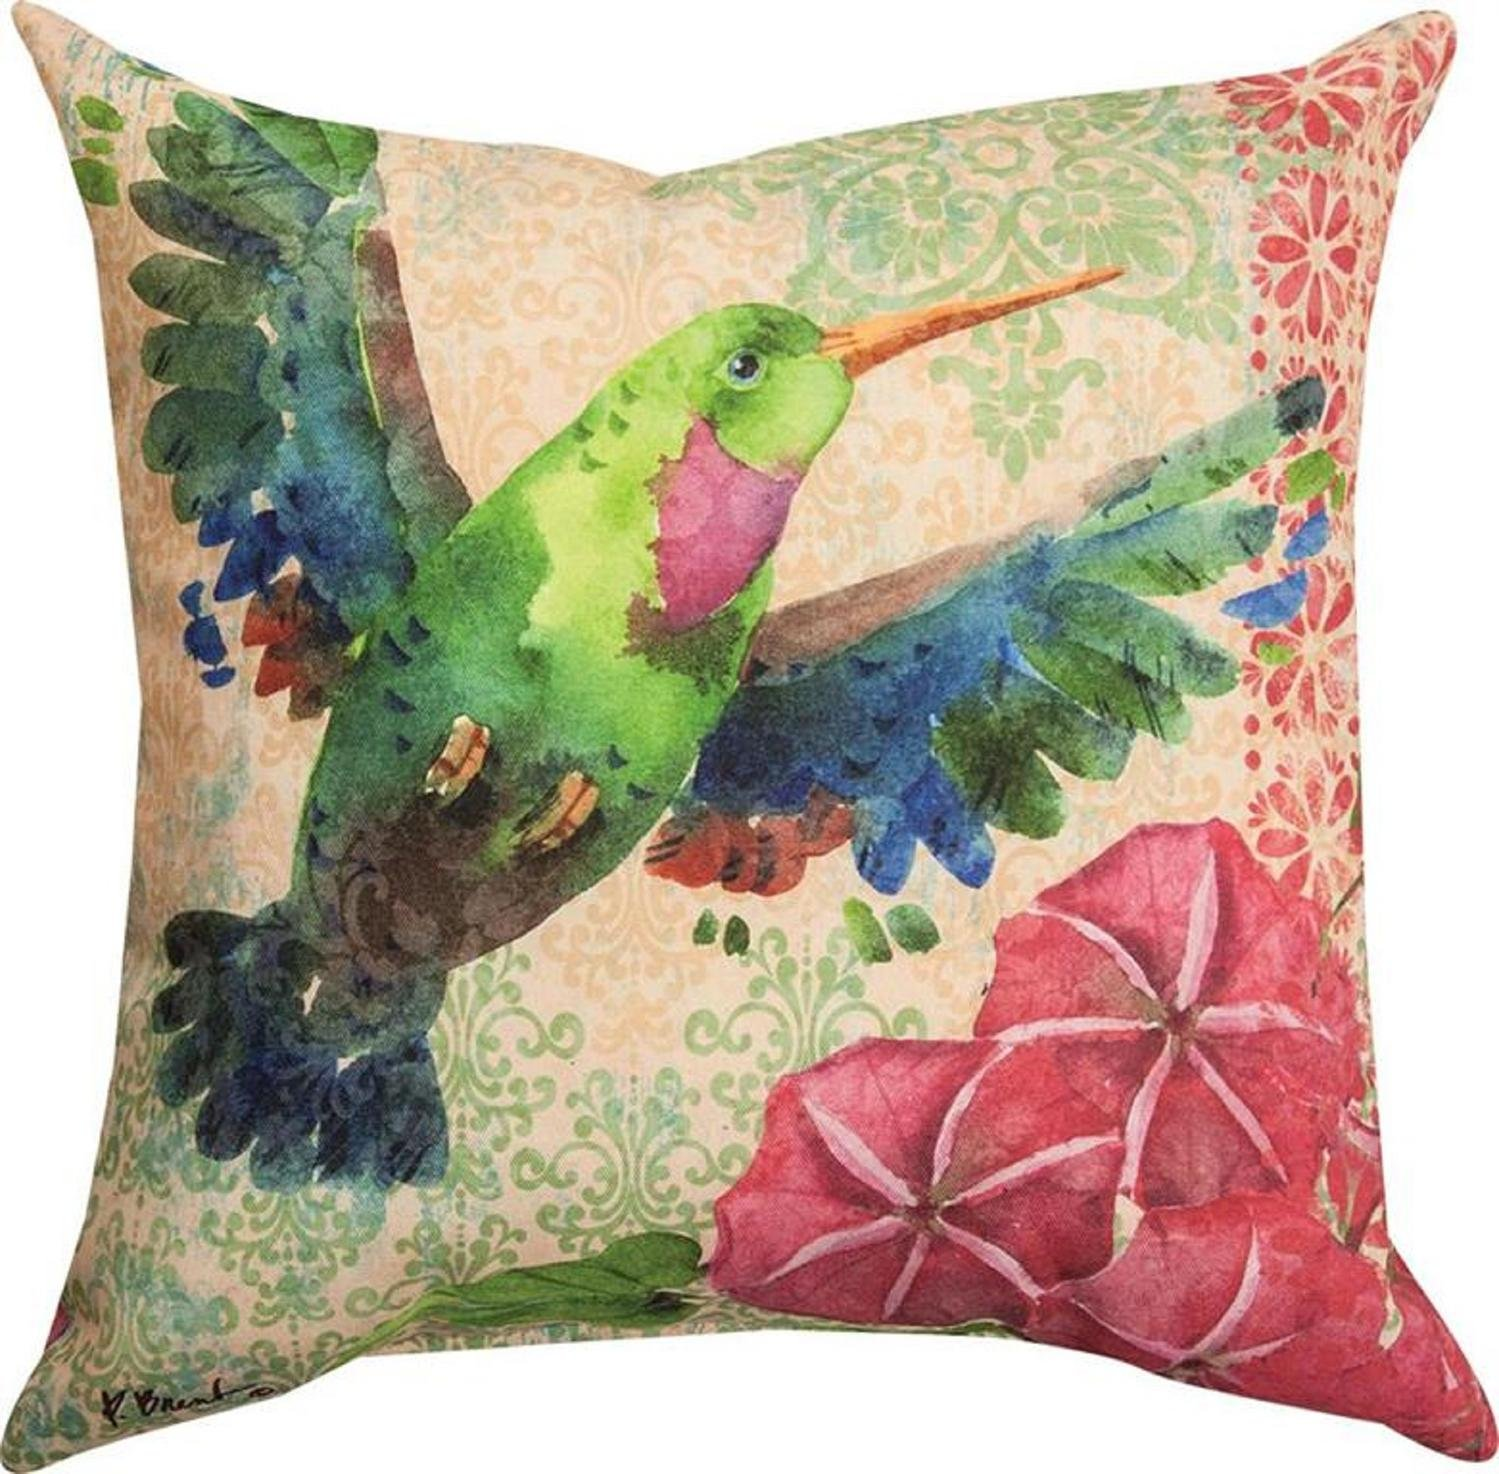 CC Home Furnishings 18 Pink and Green Humming Bird Printed Pillow with Coordinating Trim